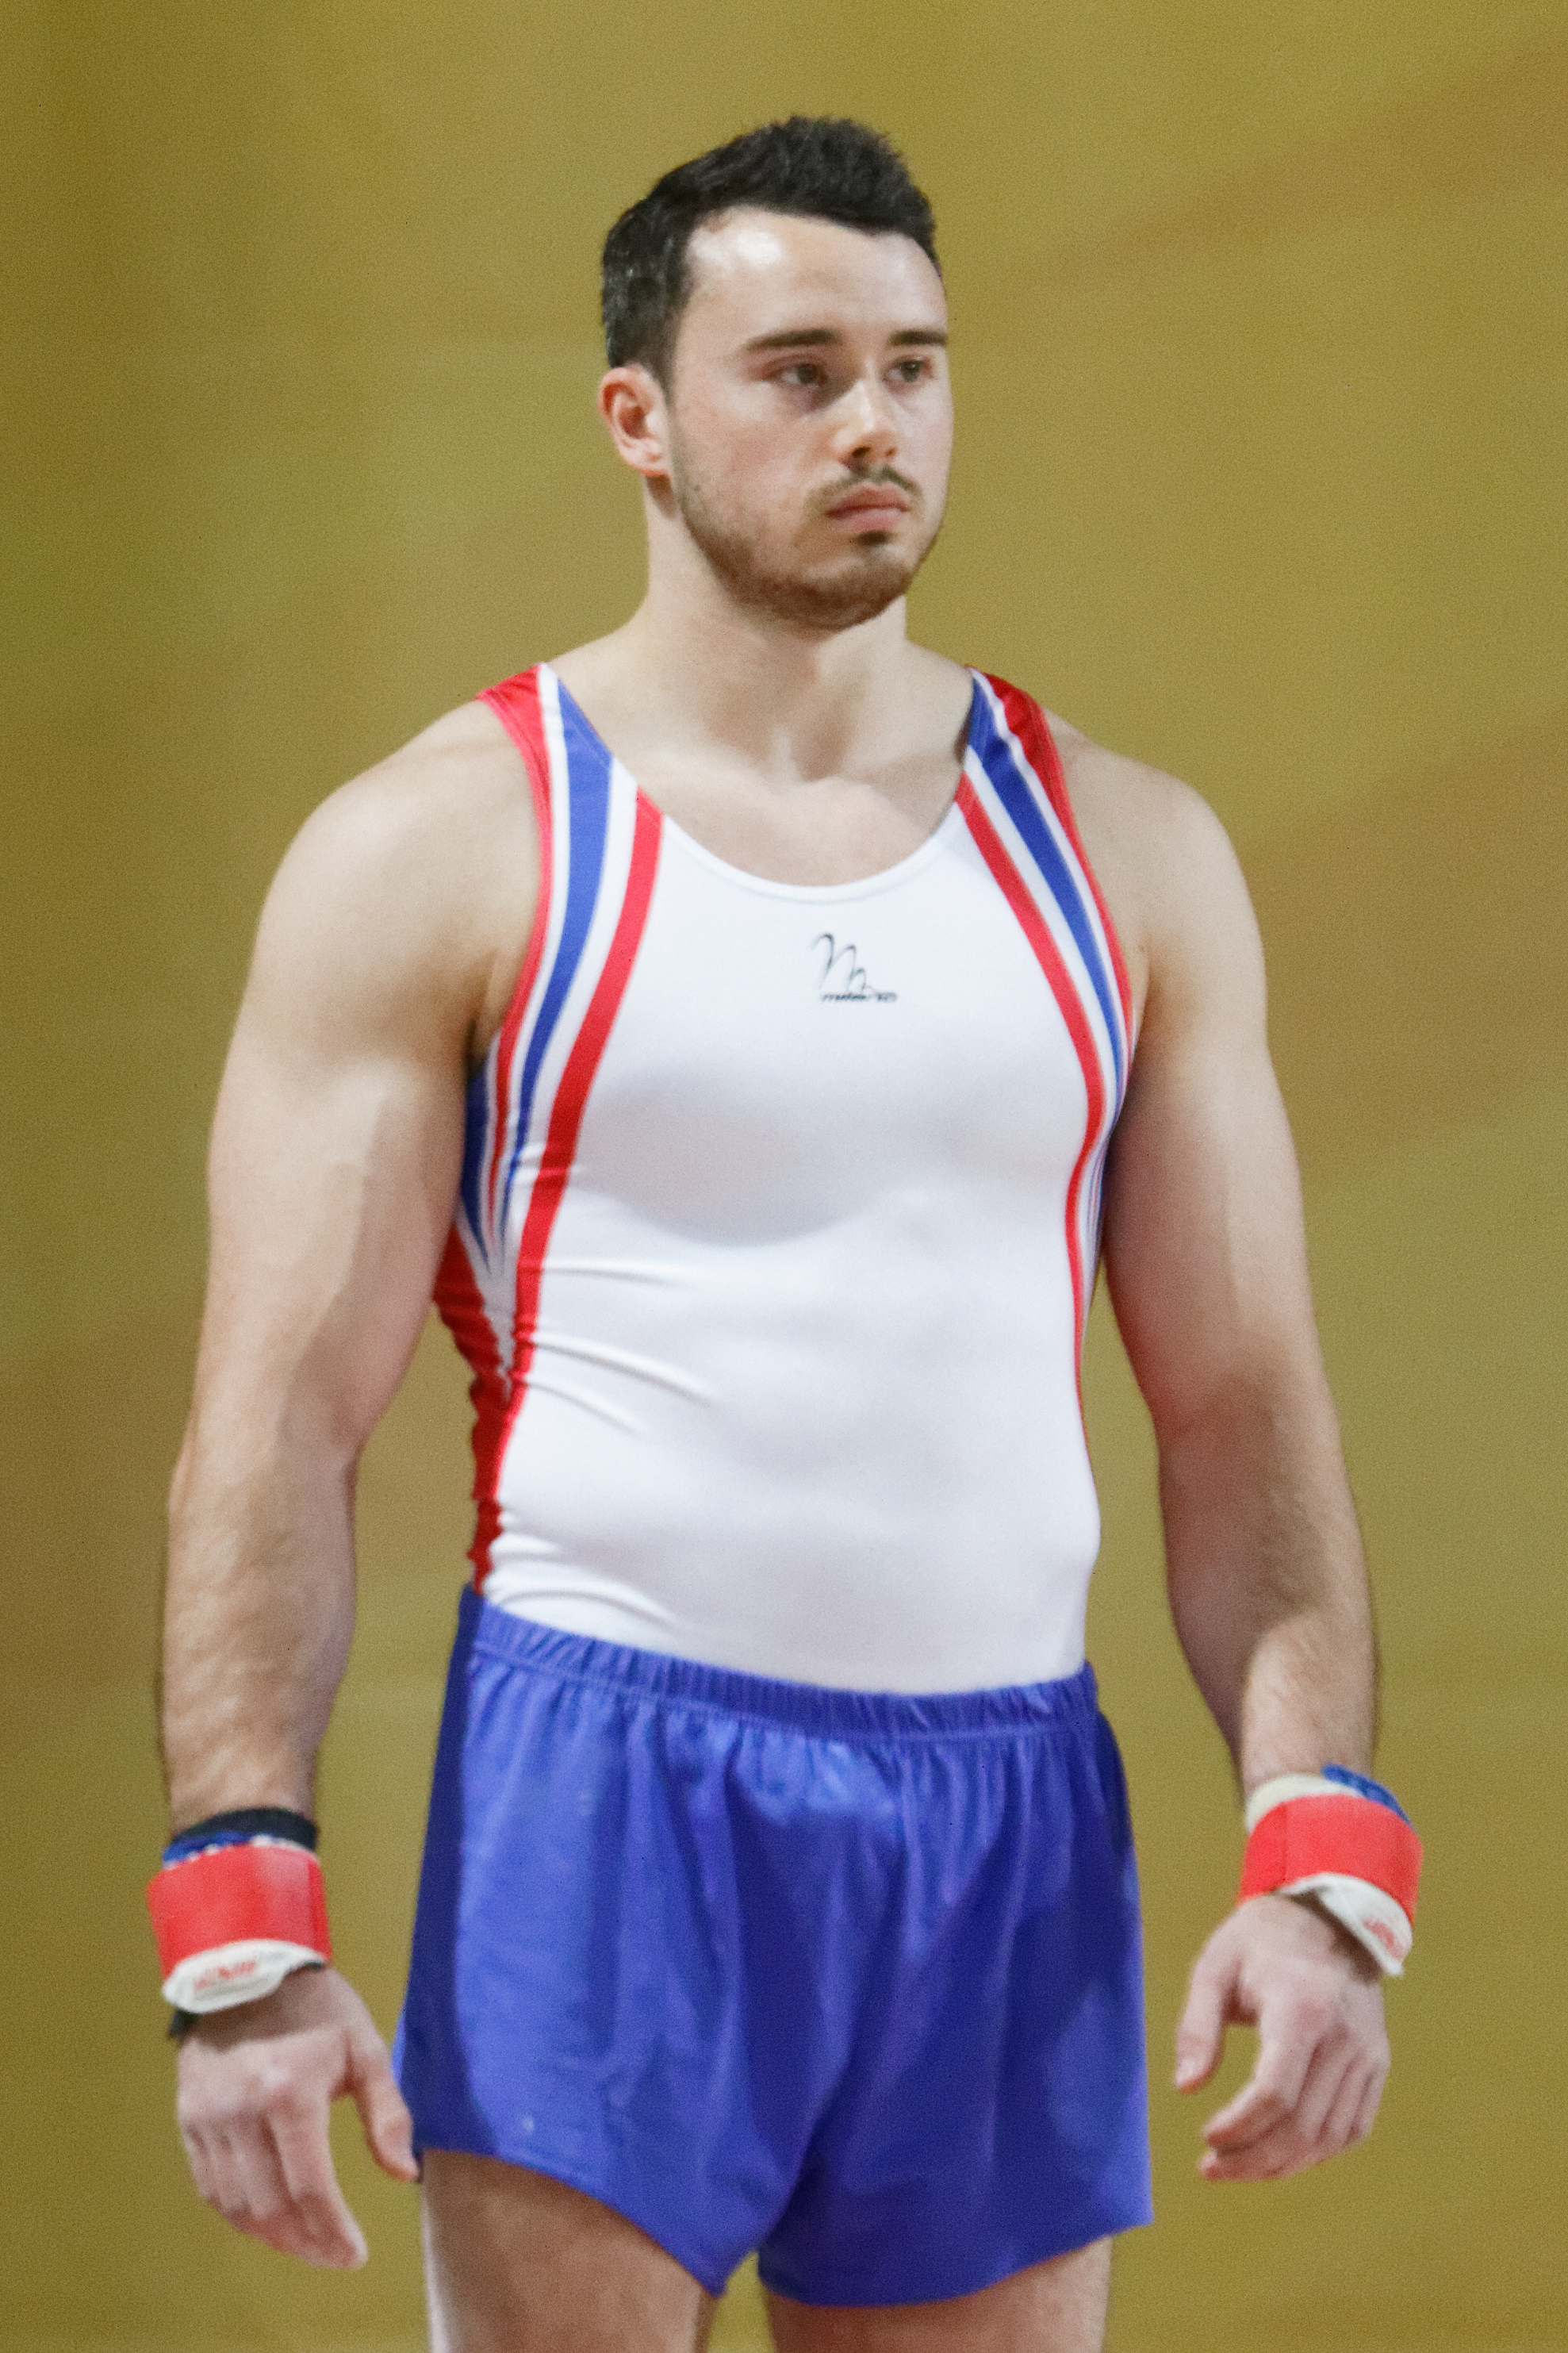 Kristian Thomas athlete